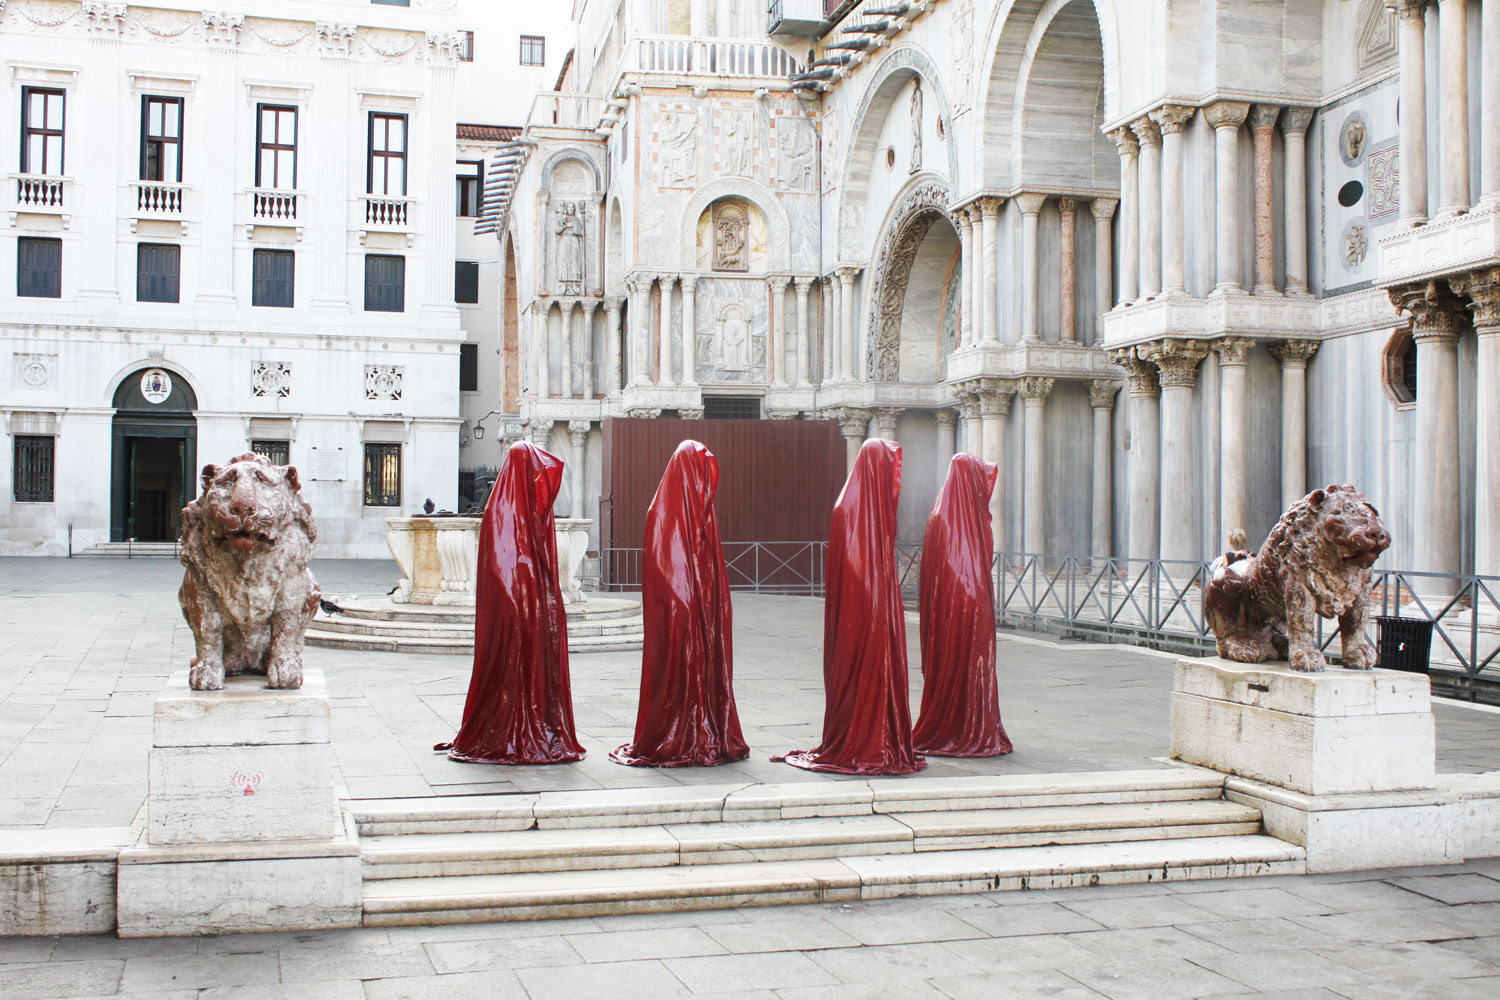 public art biennial festival show exhibition in Venice by Manfred Kielnhofer guardians of time contemporary art design architecture sculpture theatre 4250